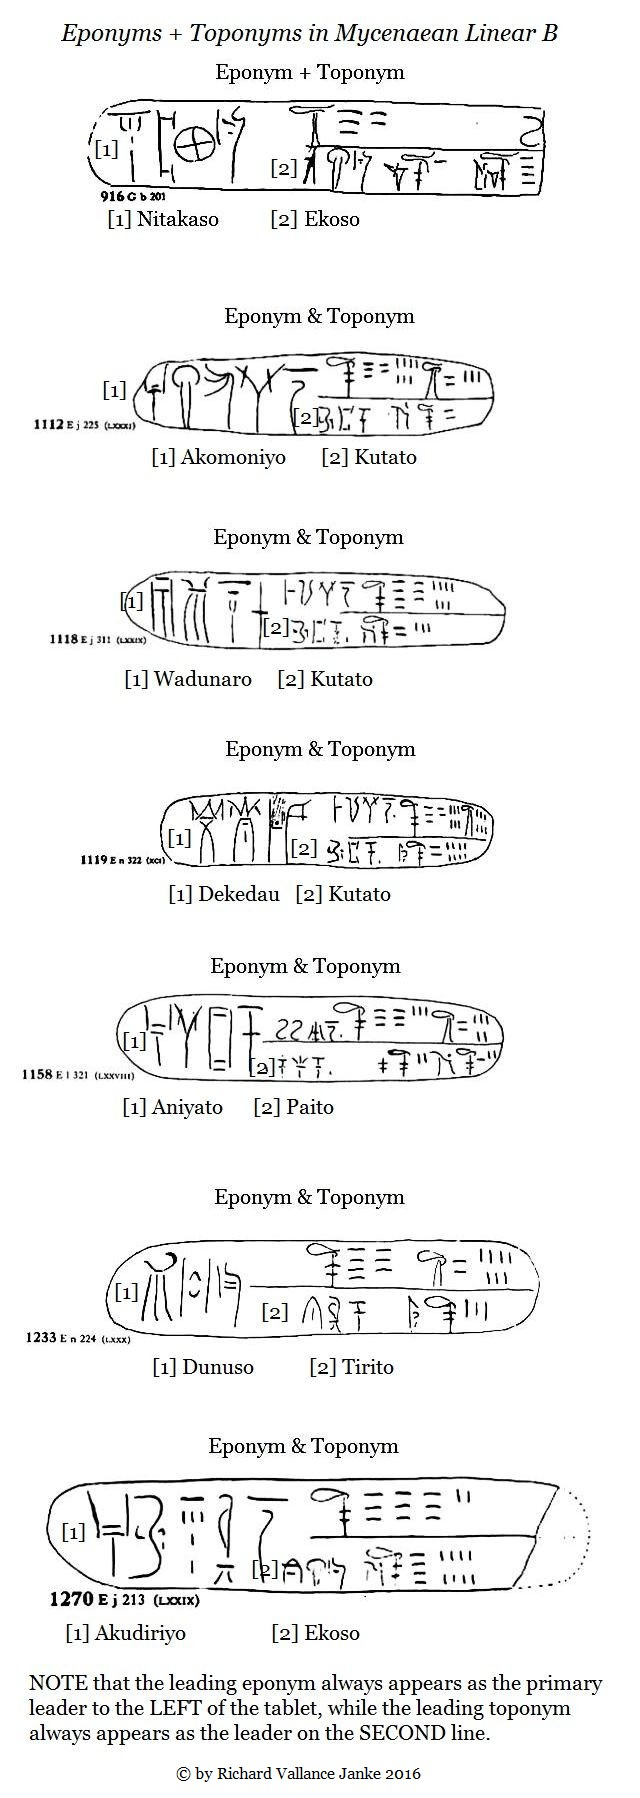 Eponyms + Toponyms in Mycenaean Linear B